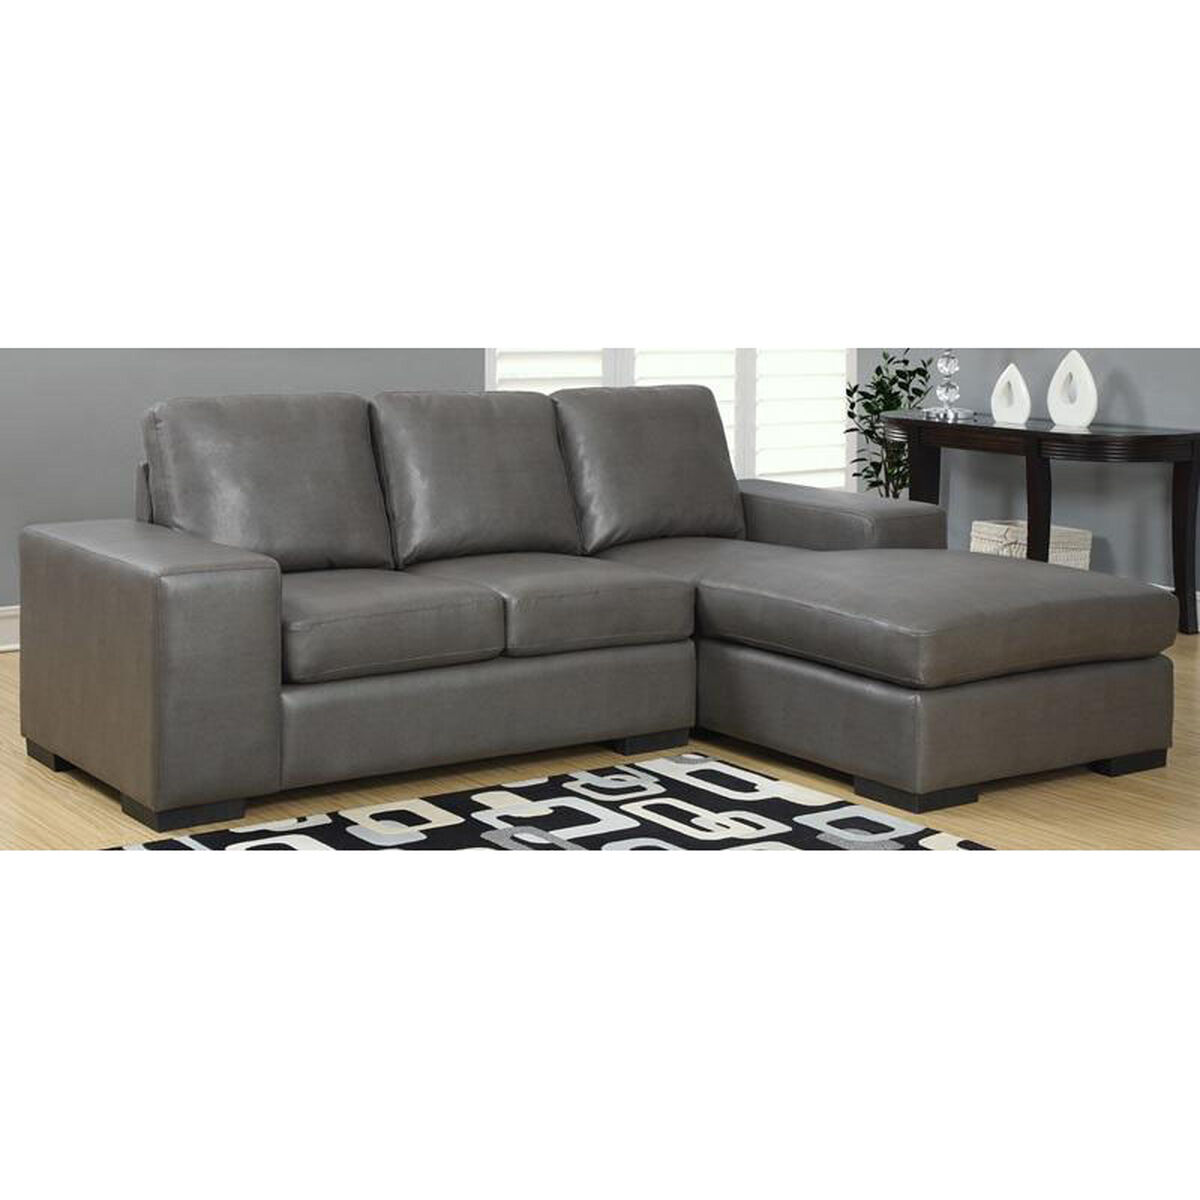 Our Bonded Leather Sofa With Lounger Charcoal Gray Is On Now